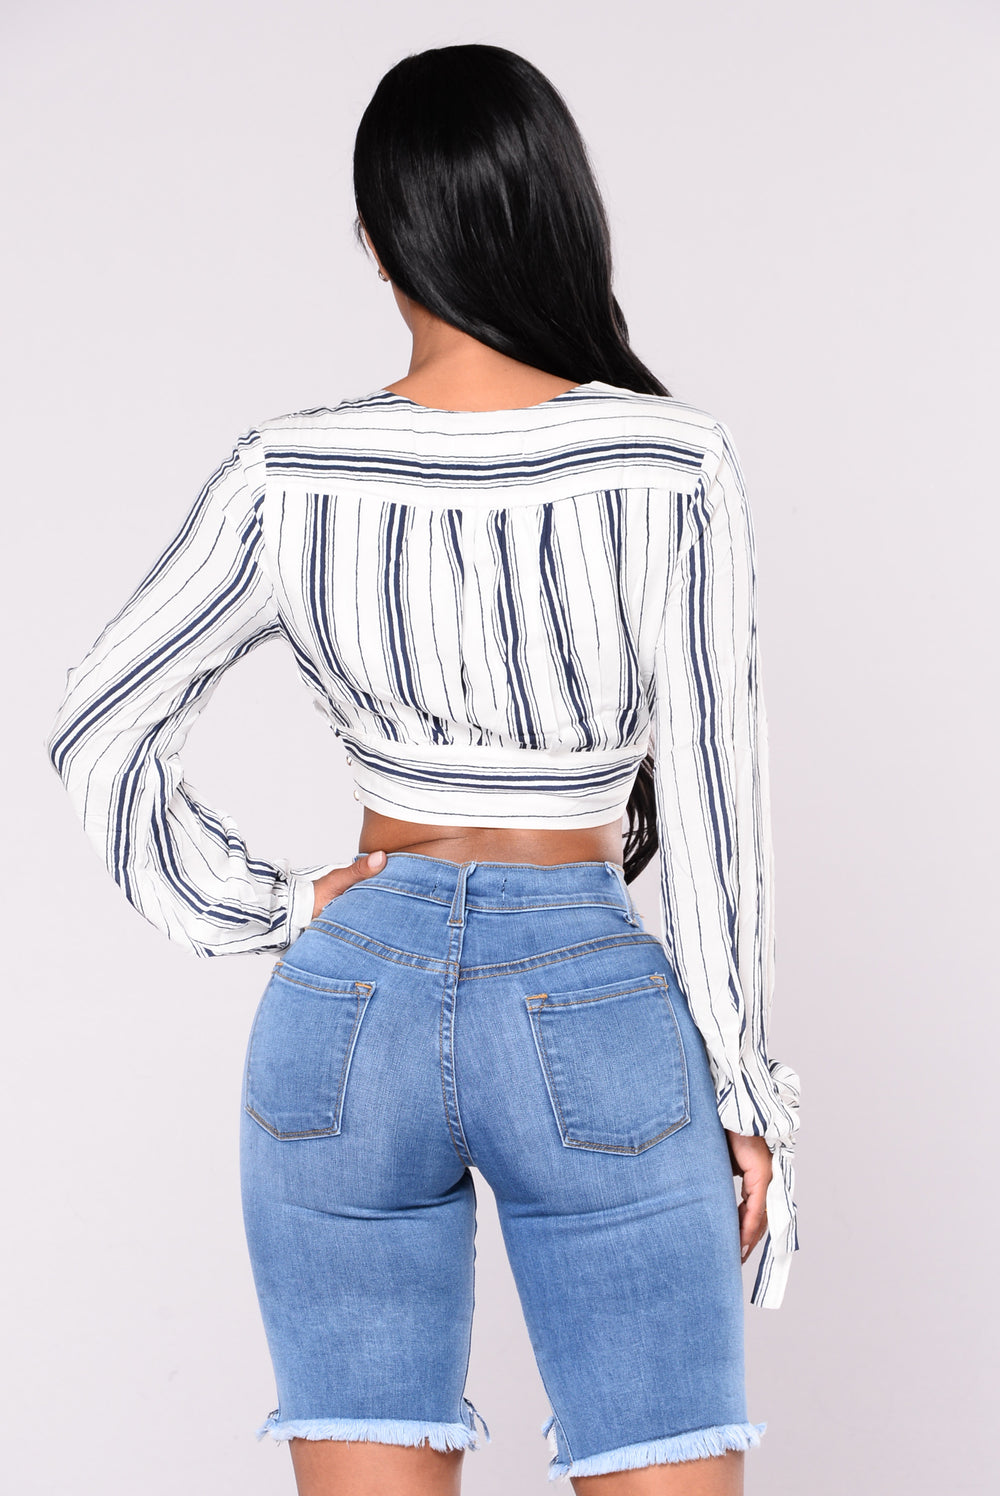 Get To Work Striped Top - Navy